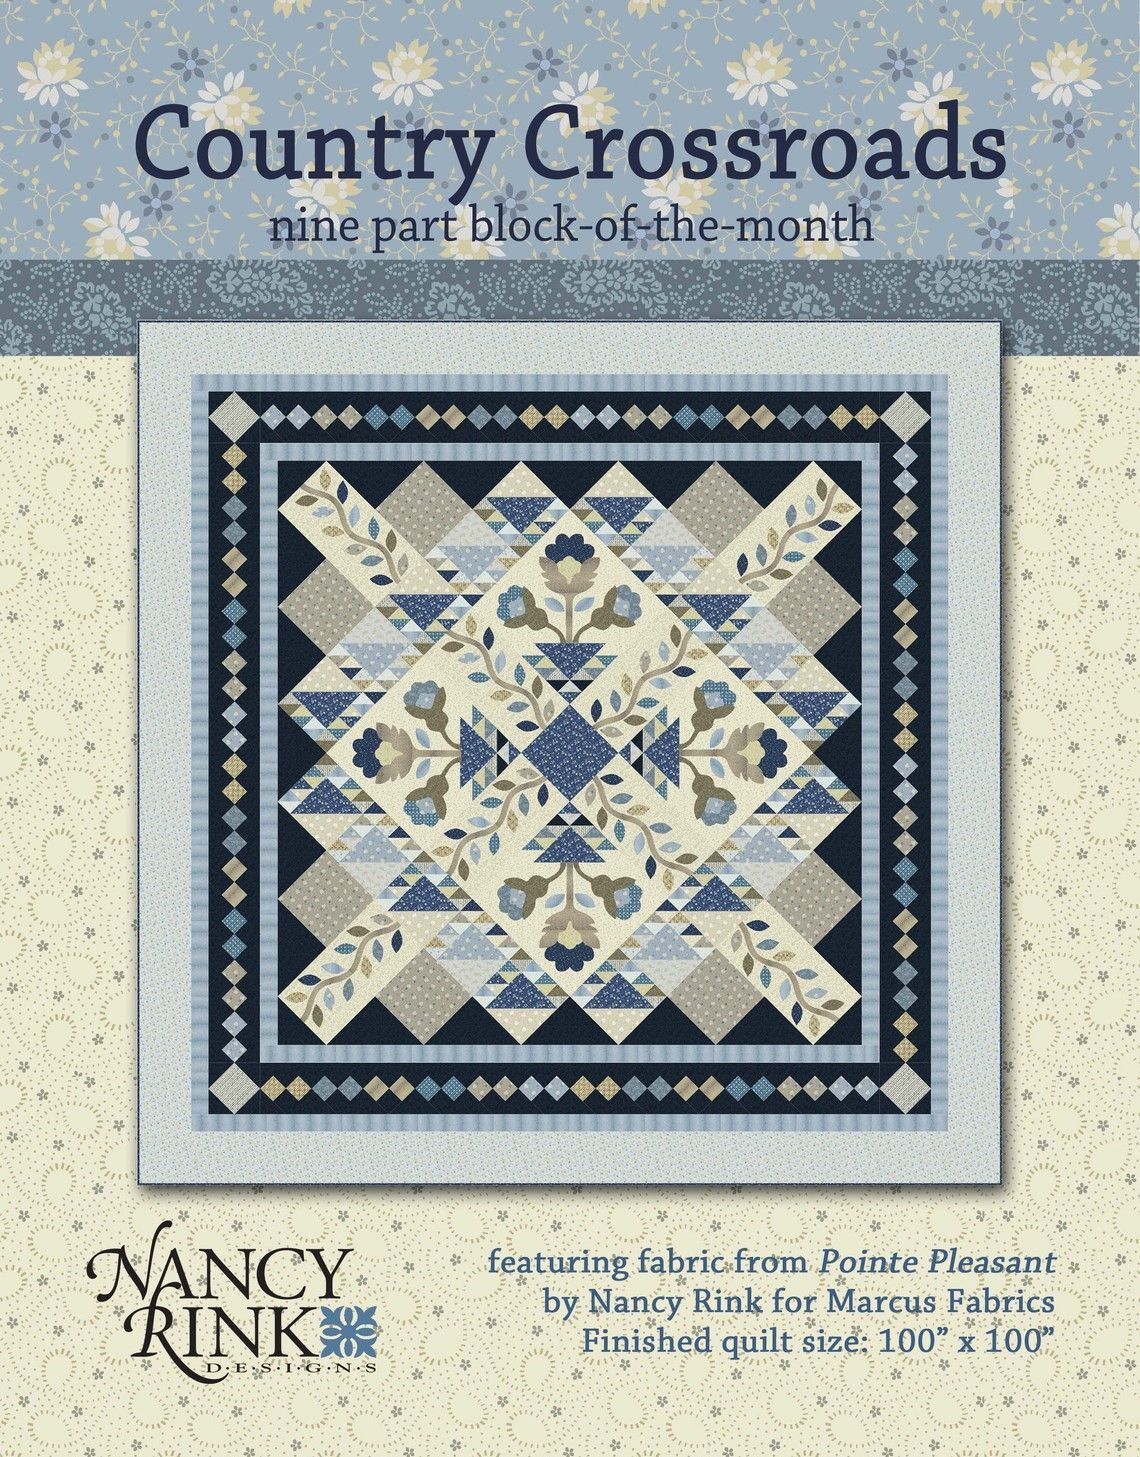 Country Crossroads BOM Pattern